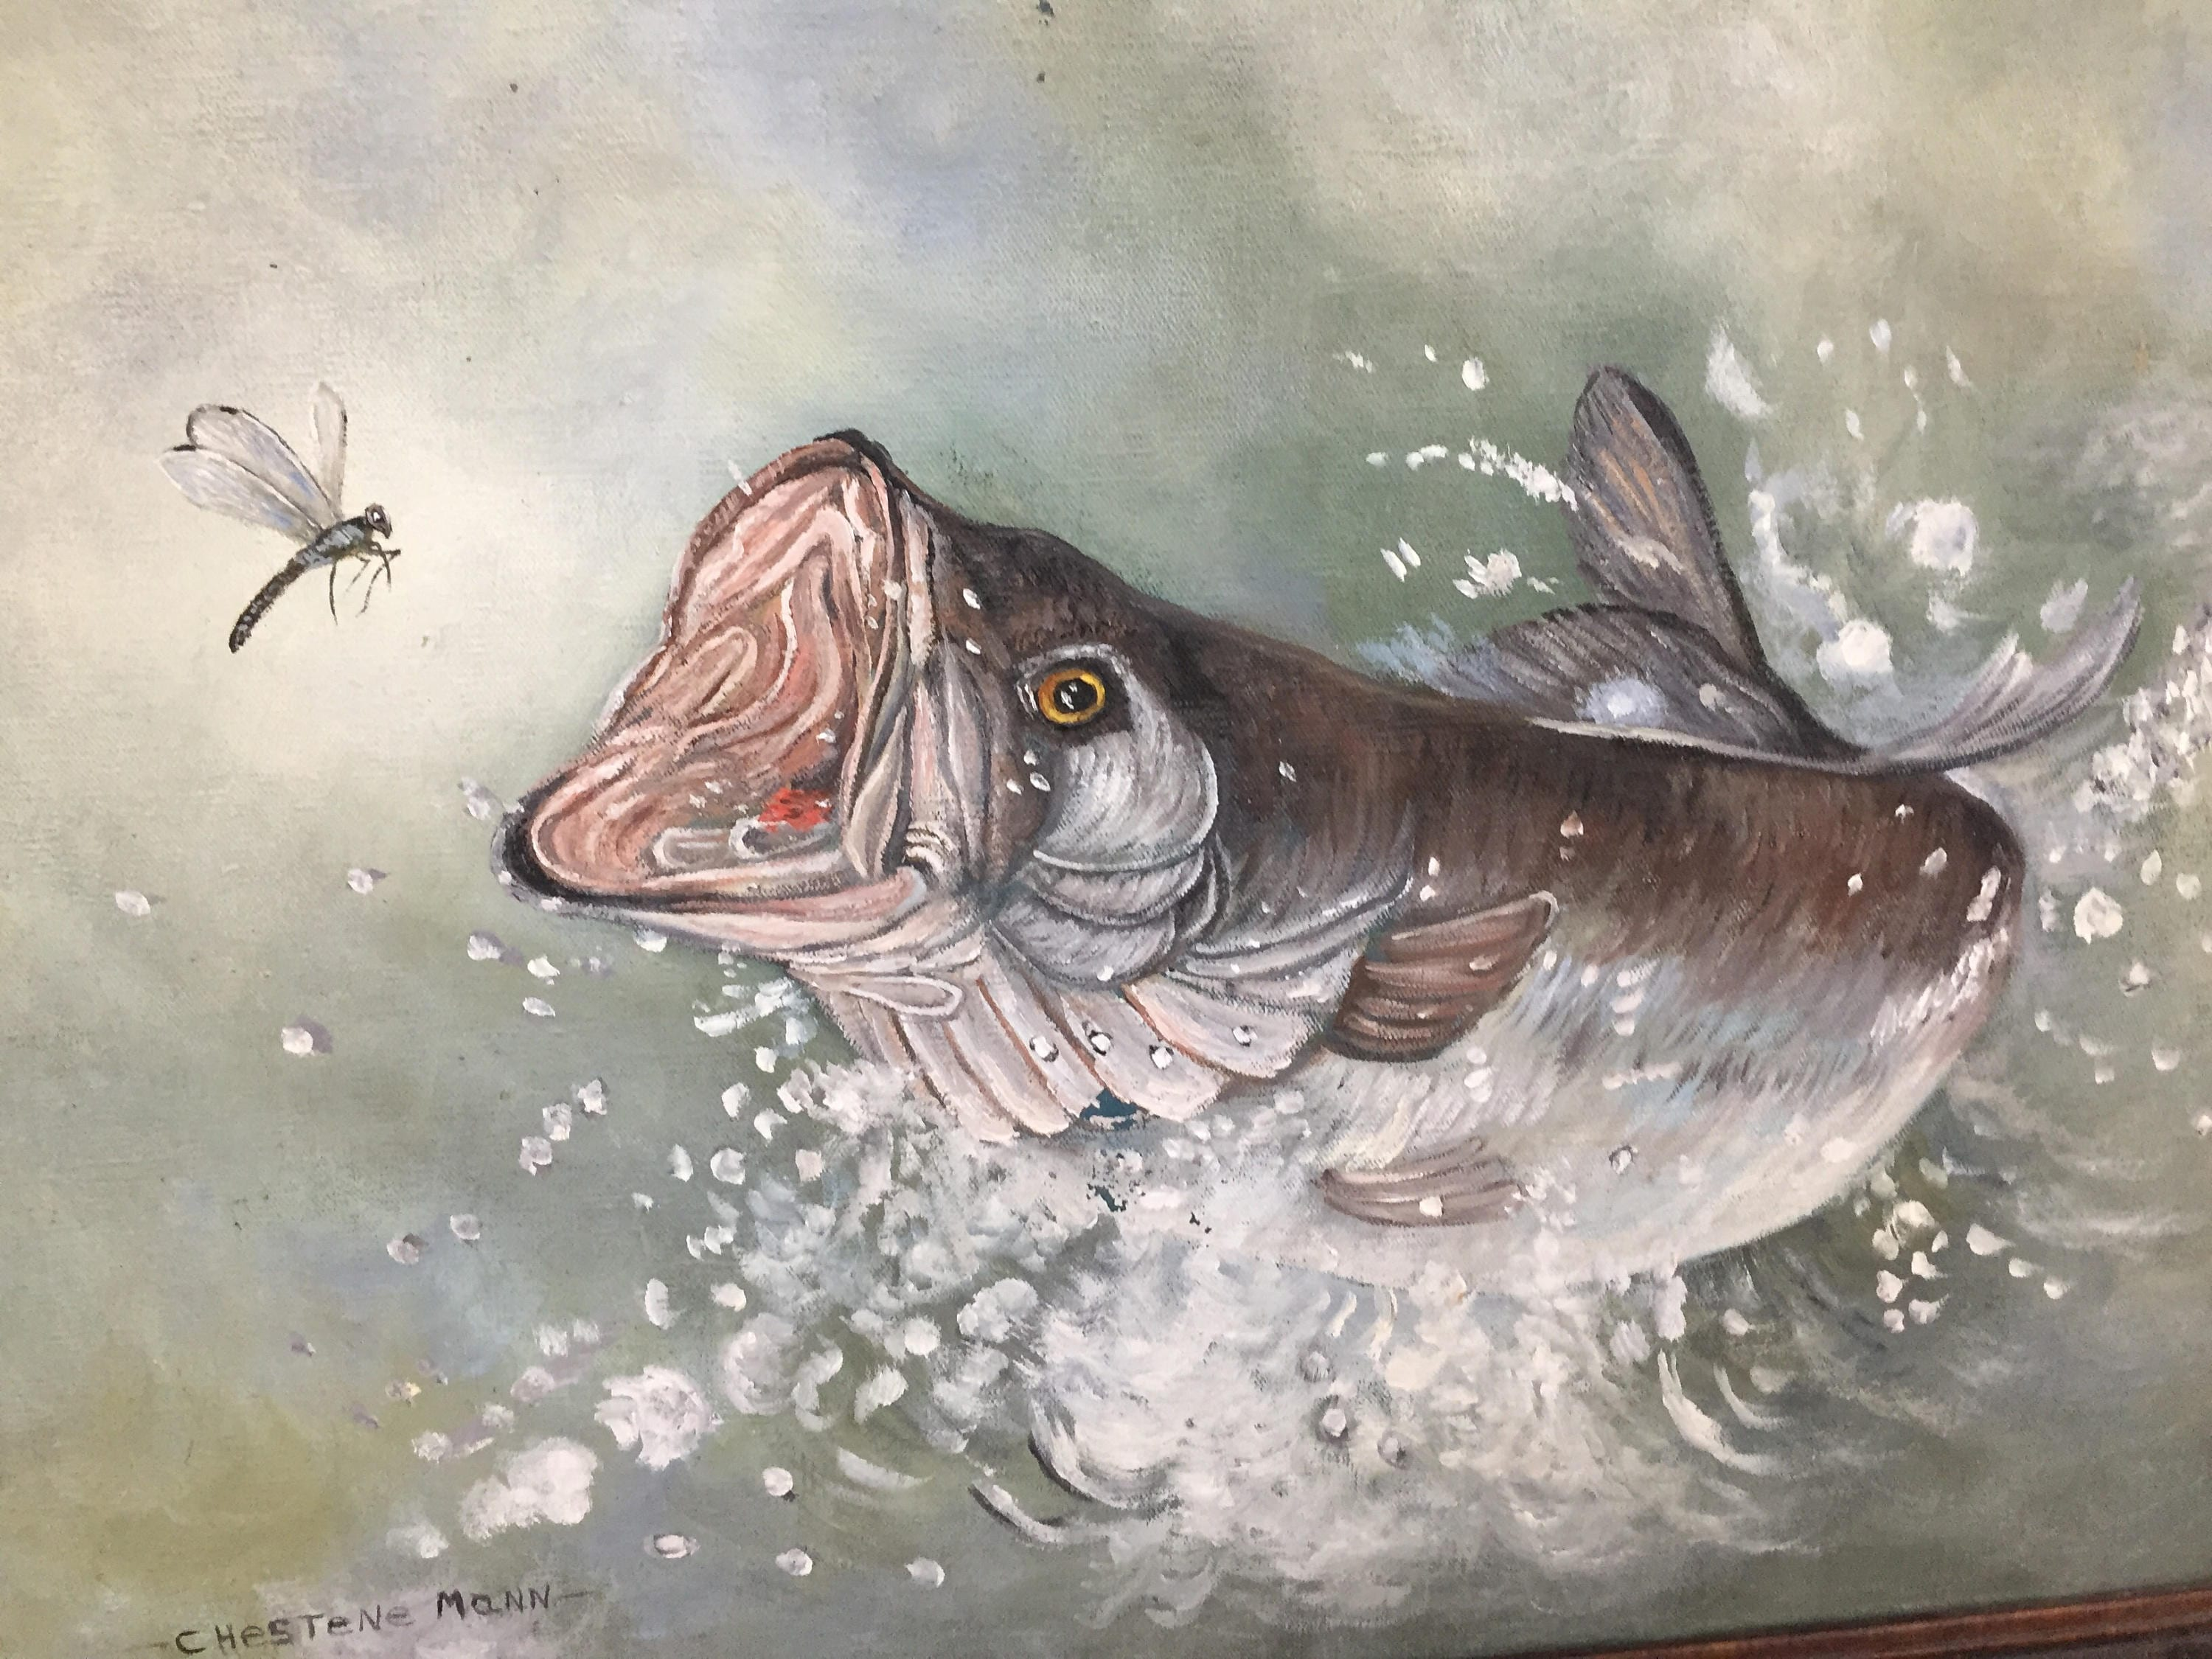 Beautiful oil on canvas painting of a fish jumping out of for Fish out of water watercolor